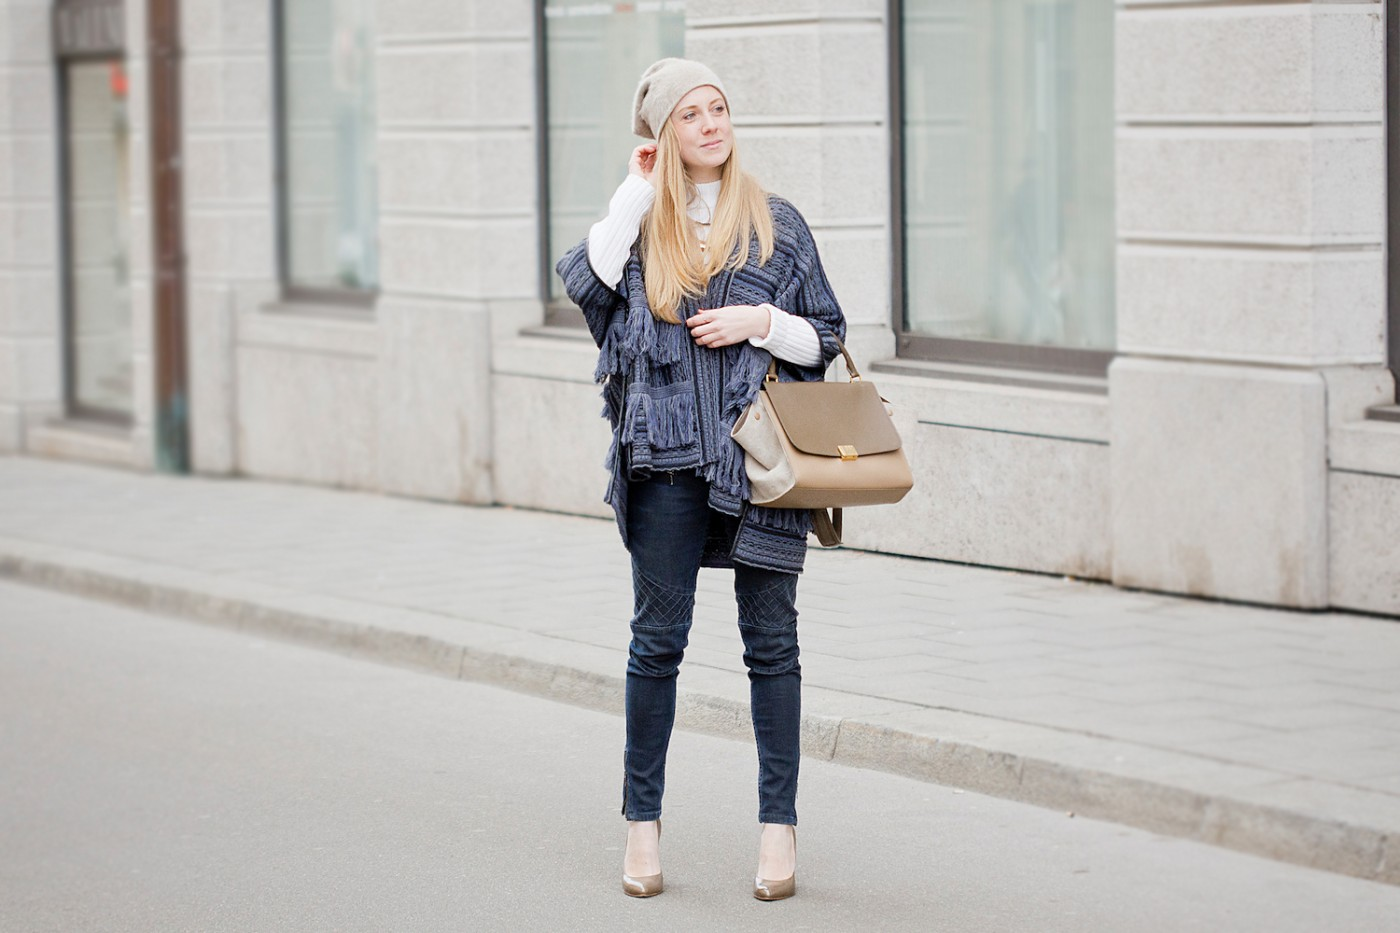 fringe poncho manila grace, donna piu scarpe shoes, beanie, winter look with poncho, The Golden Bun | München Modeblog, German Fashion Blog, Fashionblogger, new trends